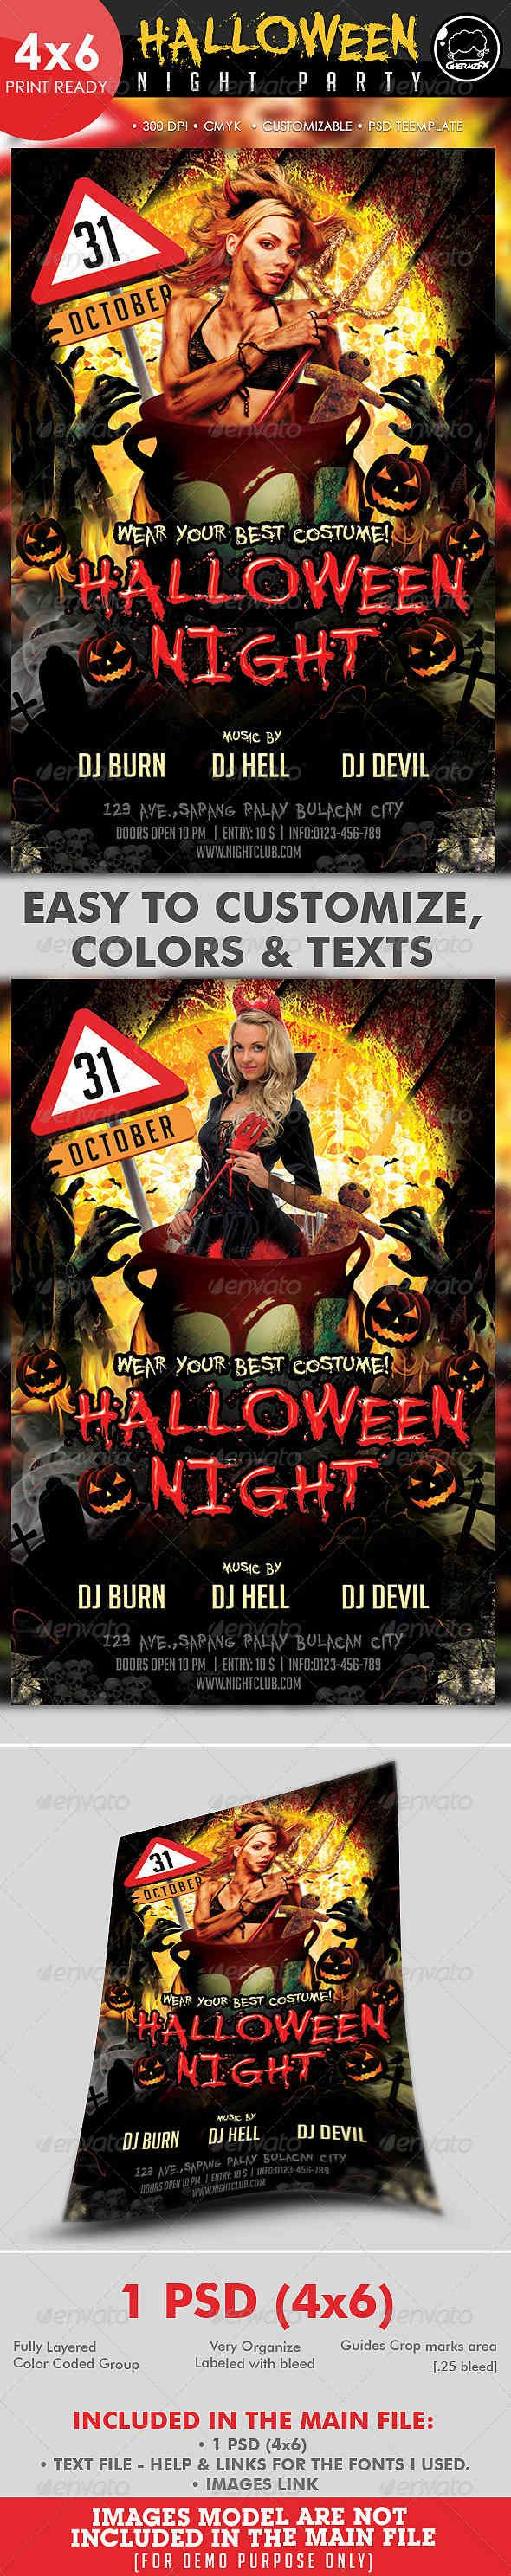 45 best Halloween Flyers & Posters images on Pinterest